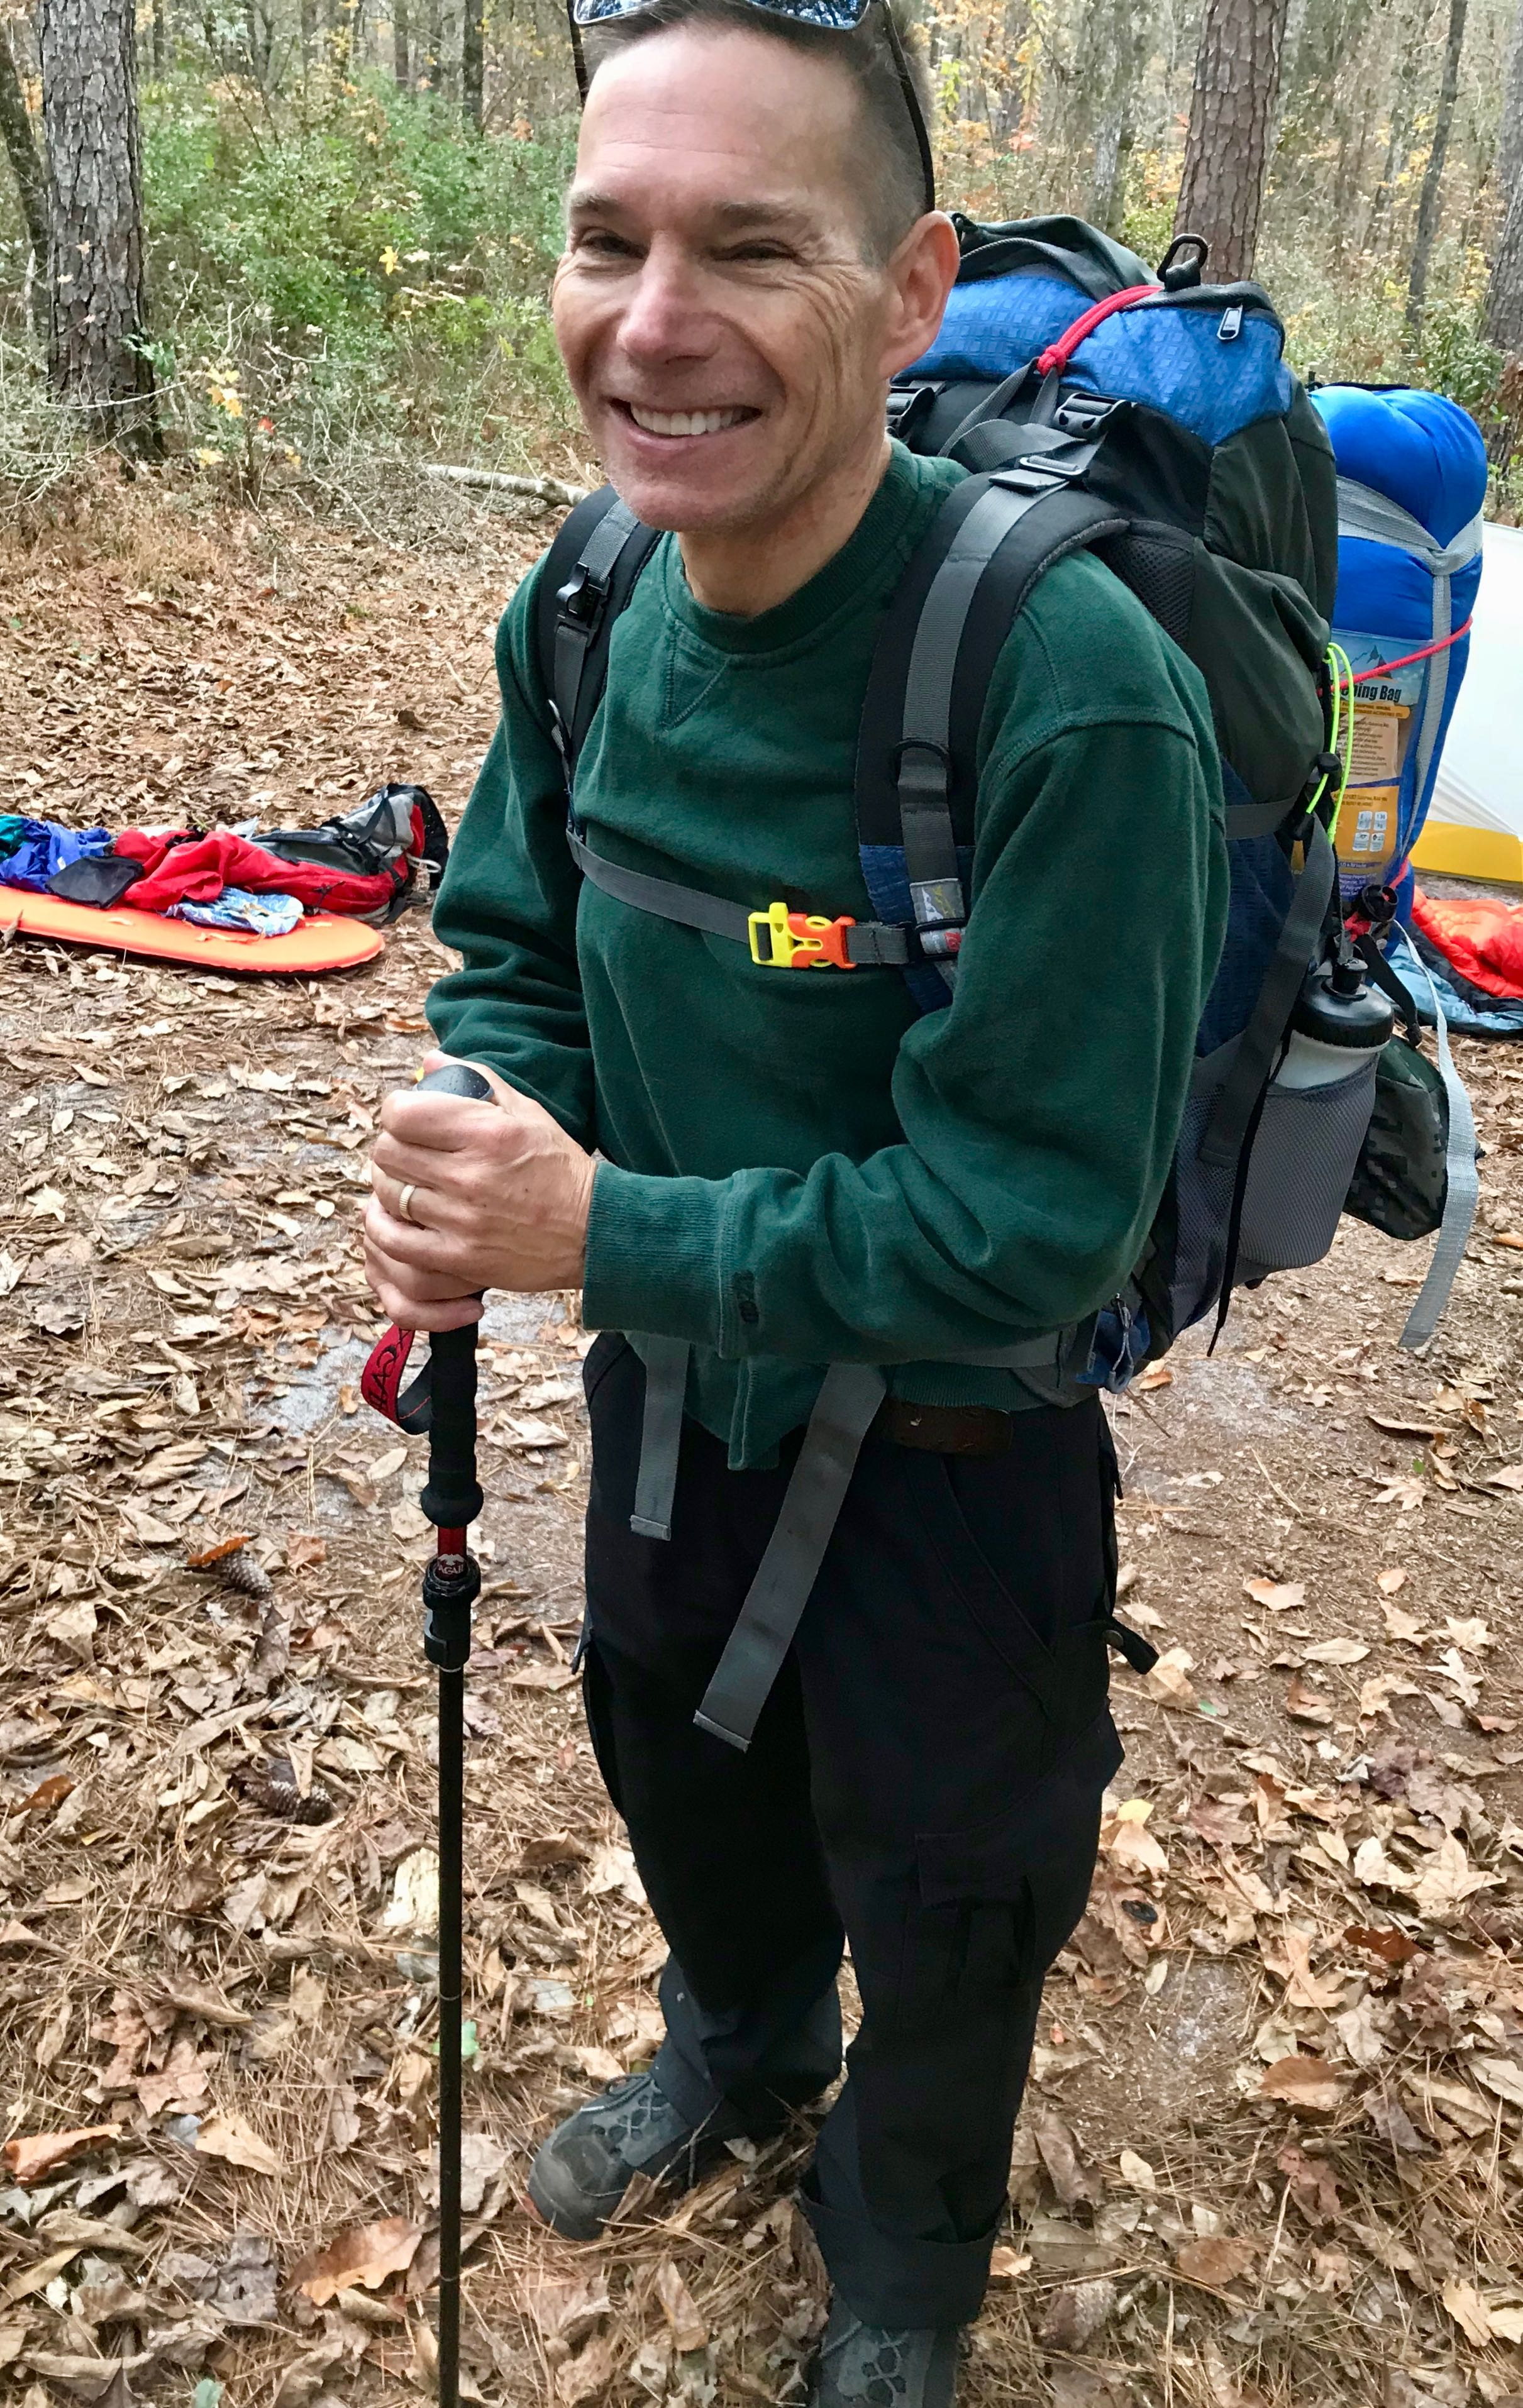 Backpacking requires focus and attention to detail.